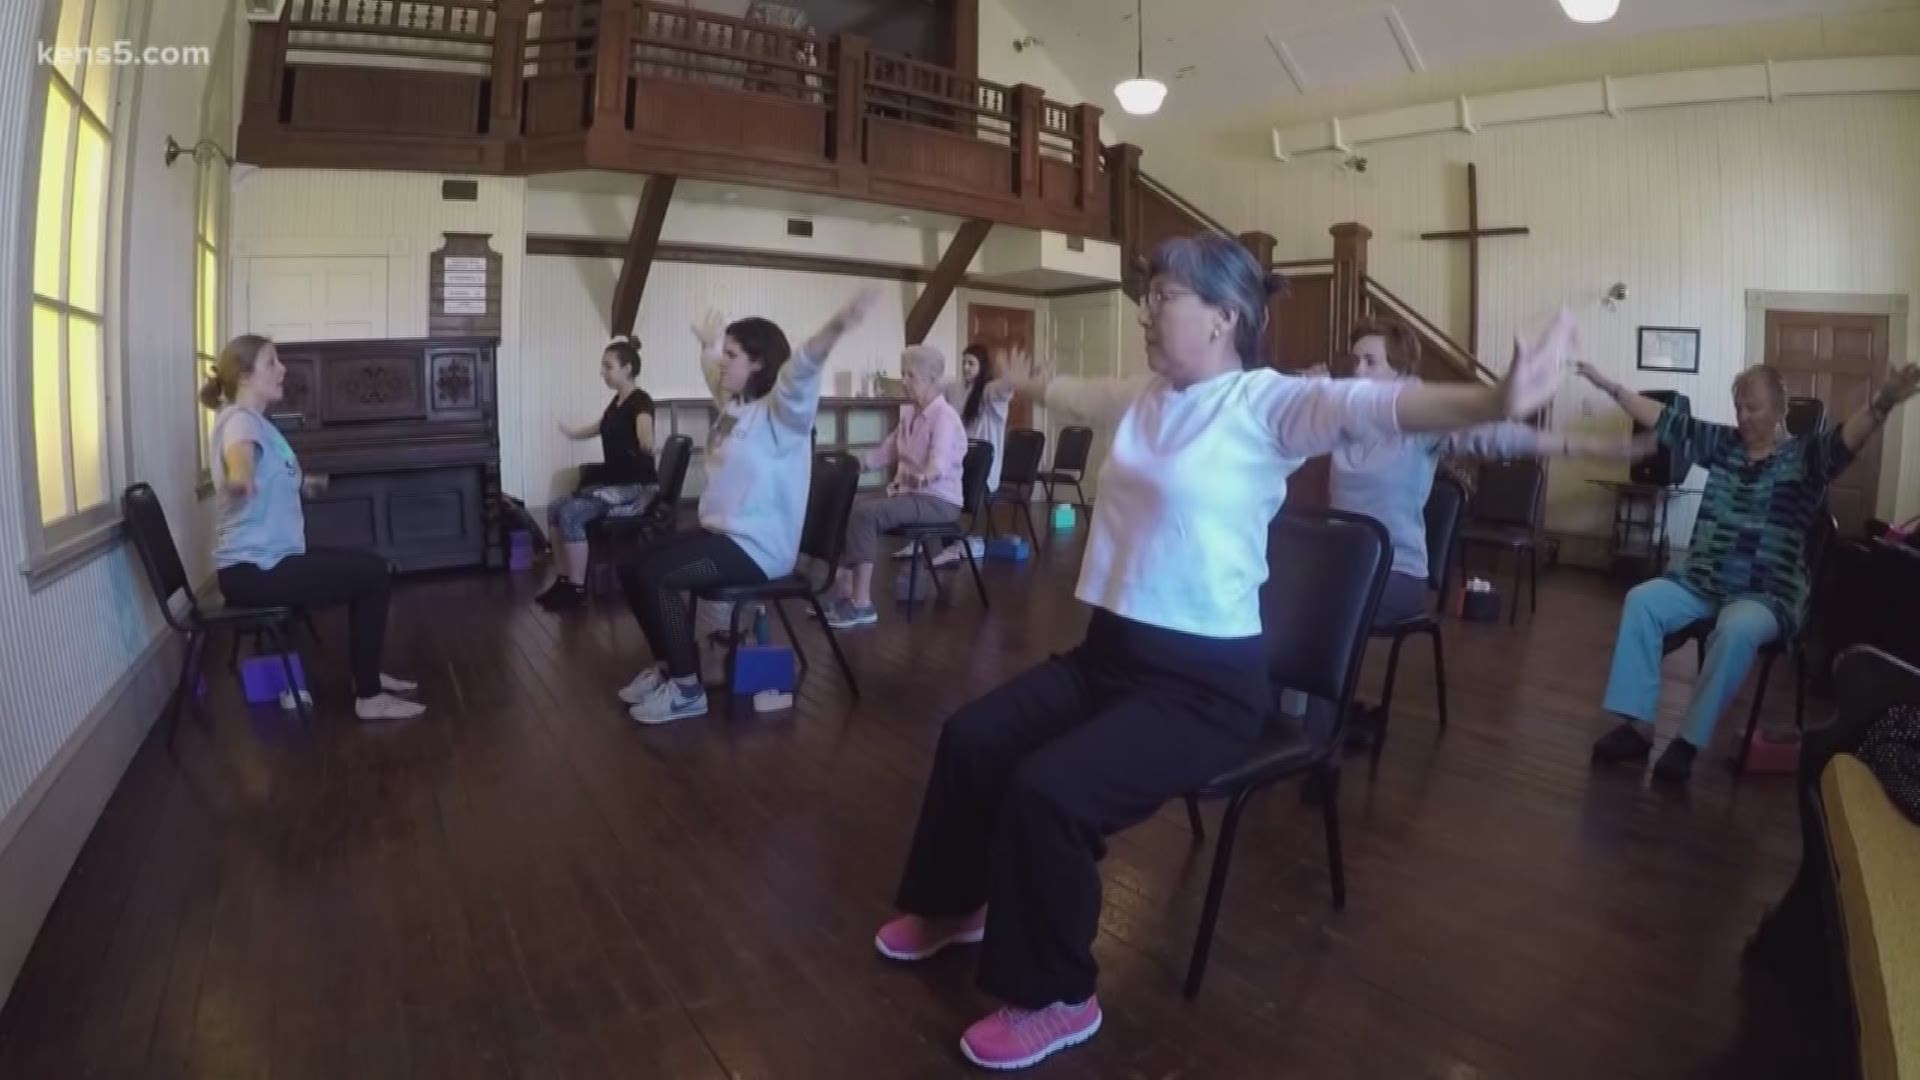 Seniors And College Students Excel In Yoga Together Kens5 Com